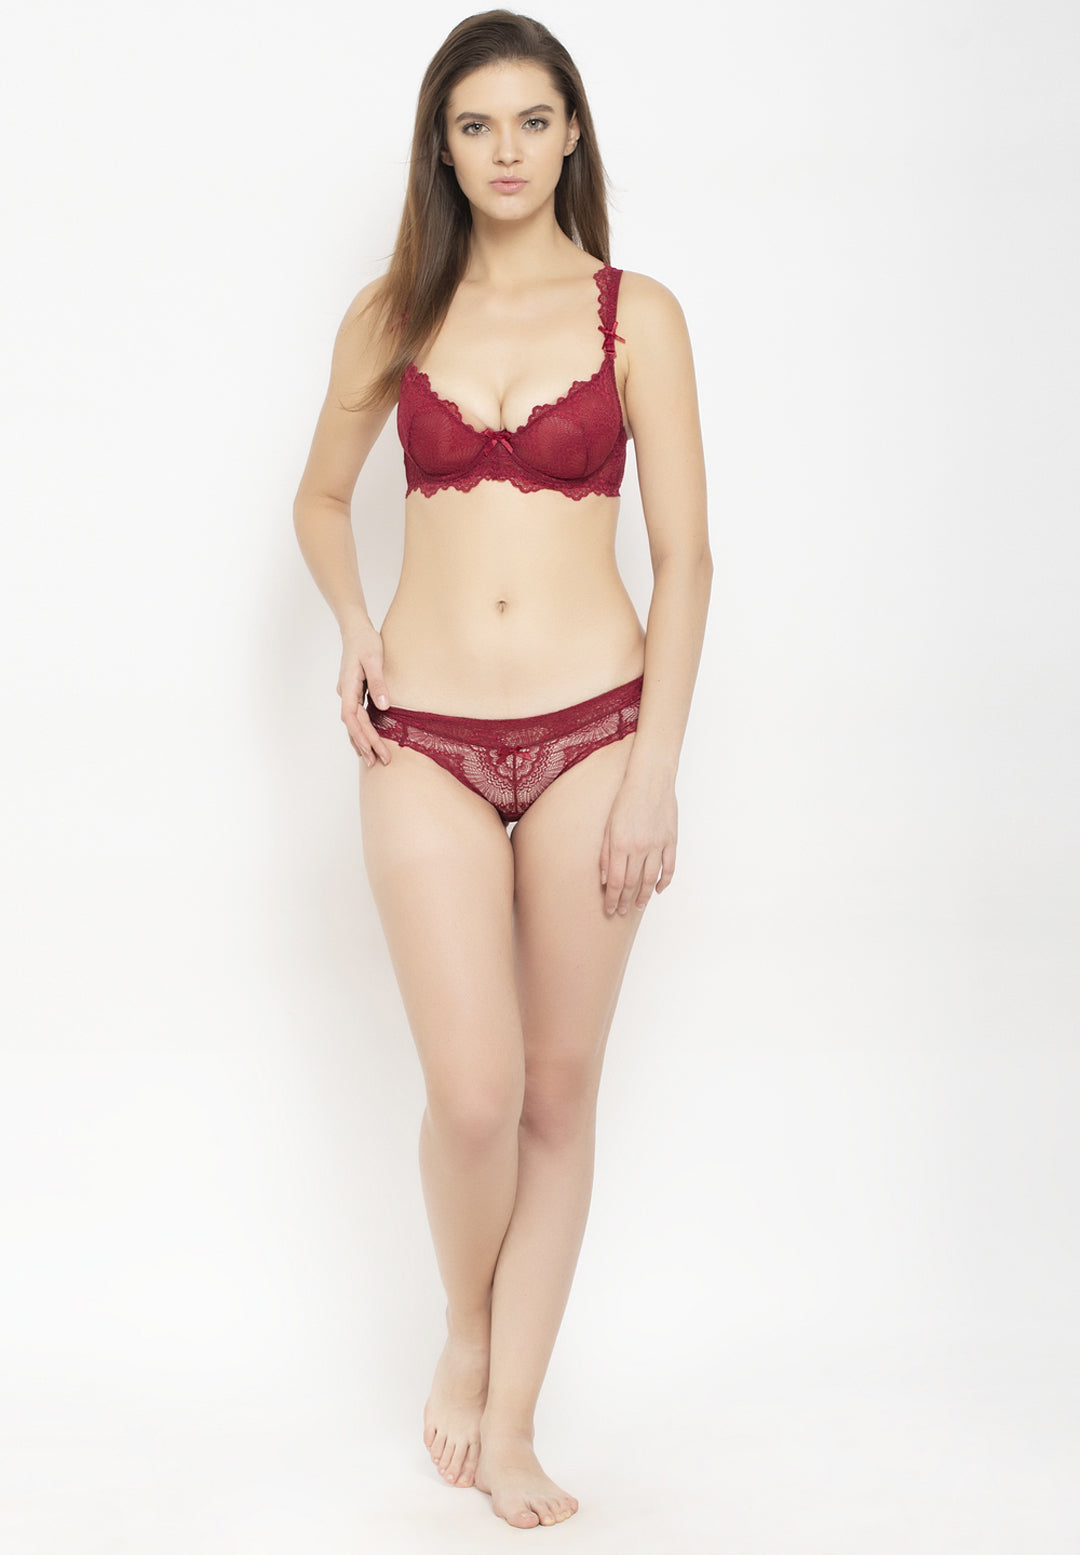 Avant-Garde Paris Padded Underwired Lace Lingerie Set